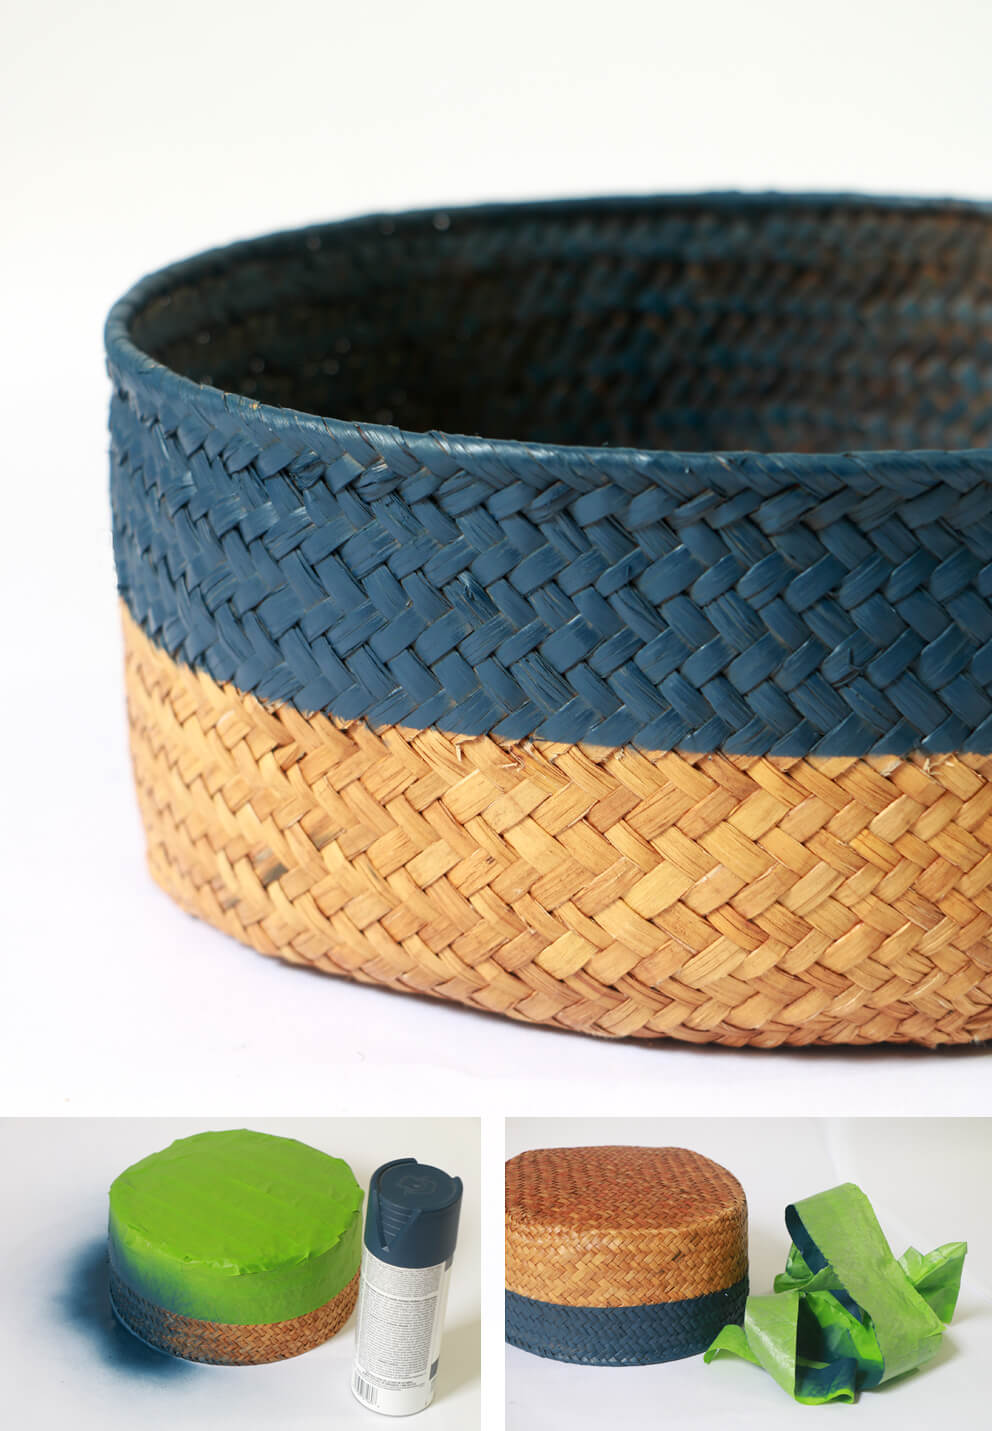 DIY Basket Design - Color blocking